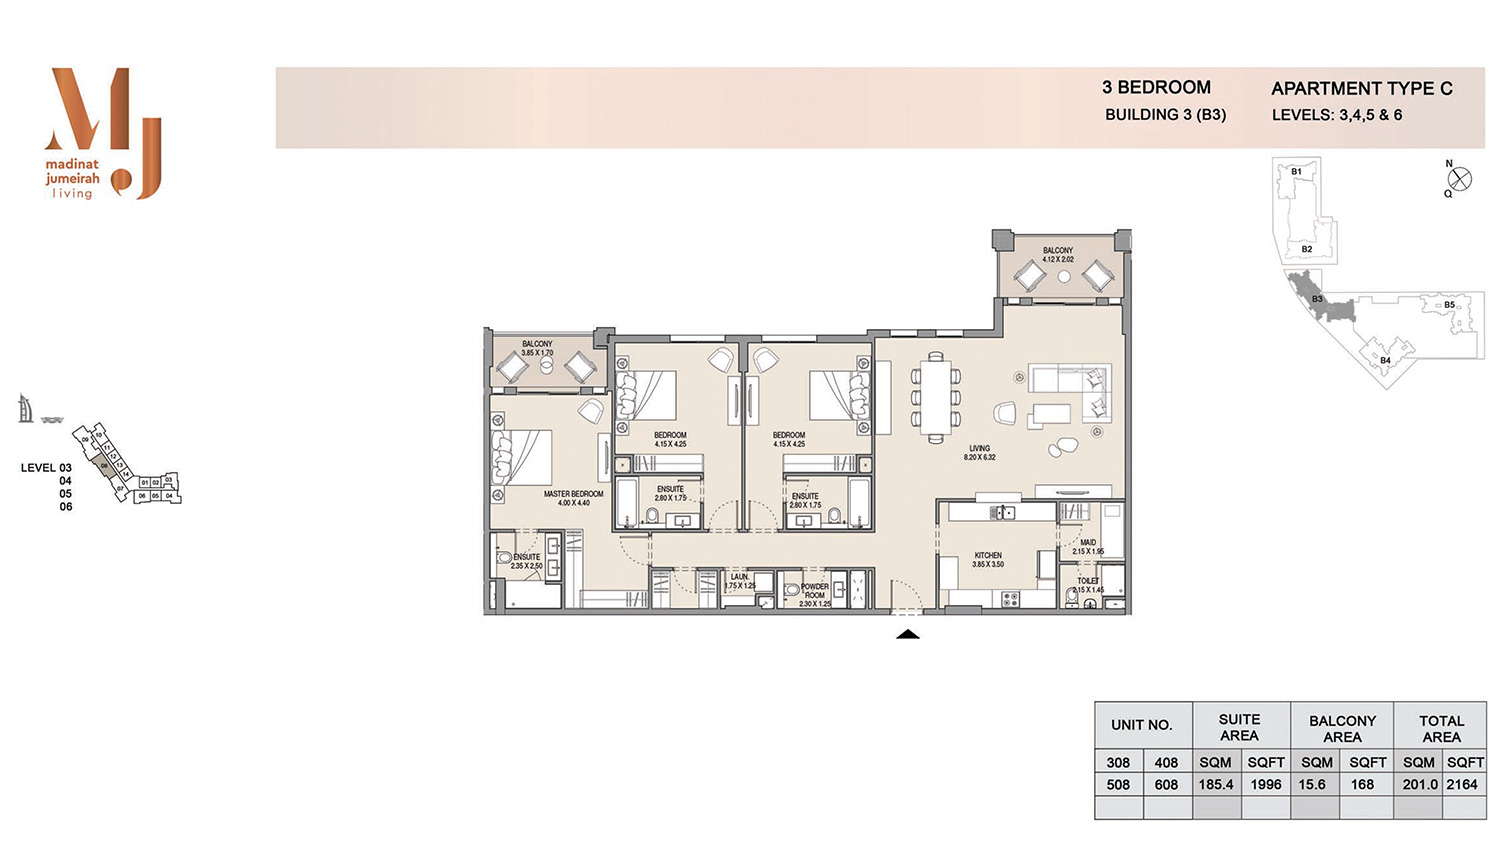 Building3 3 Bedroom, Type C, Levels 3 to 6, Size 2164 sq.ft